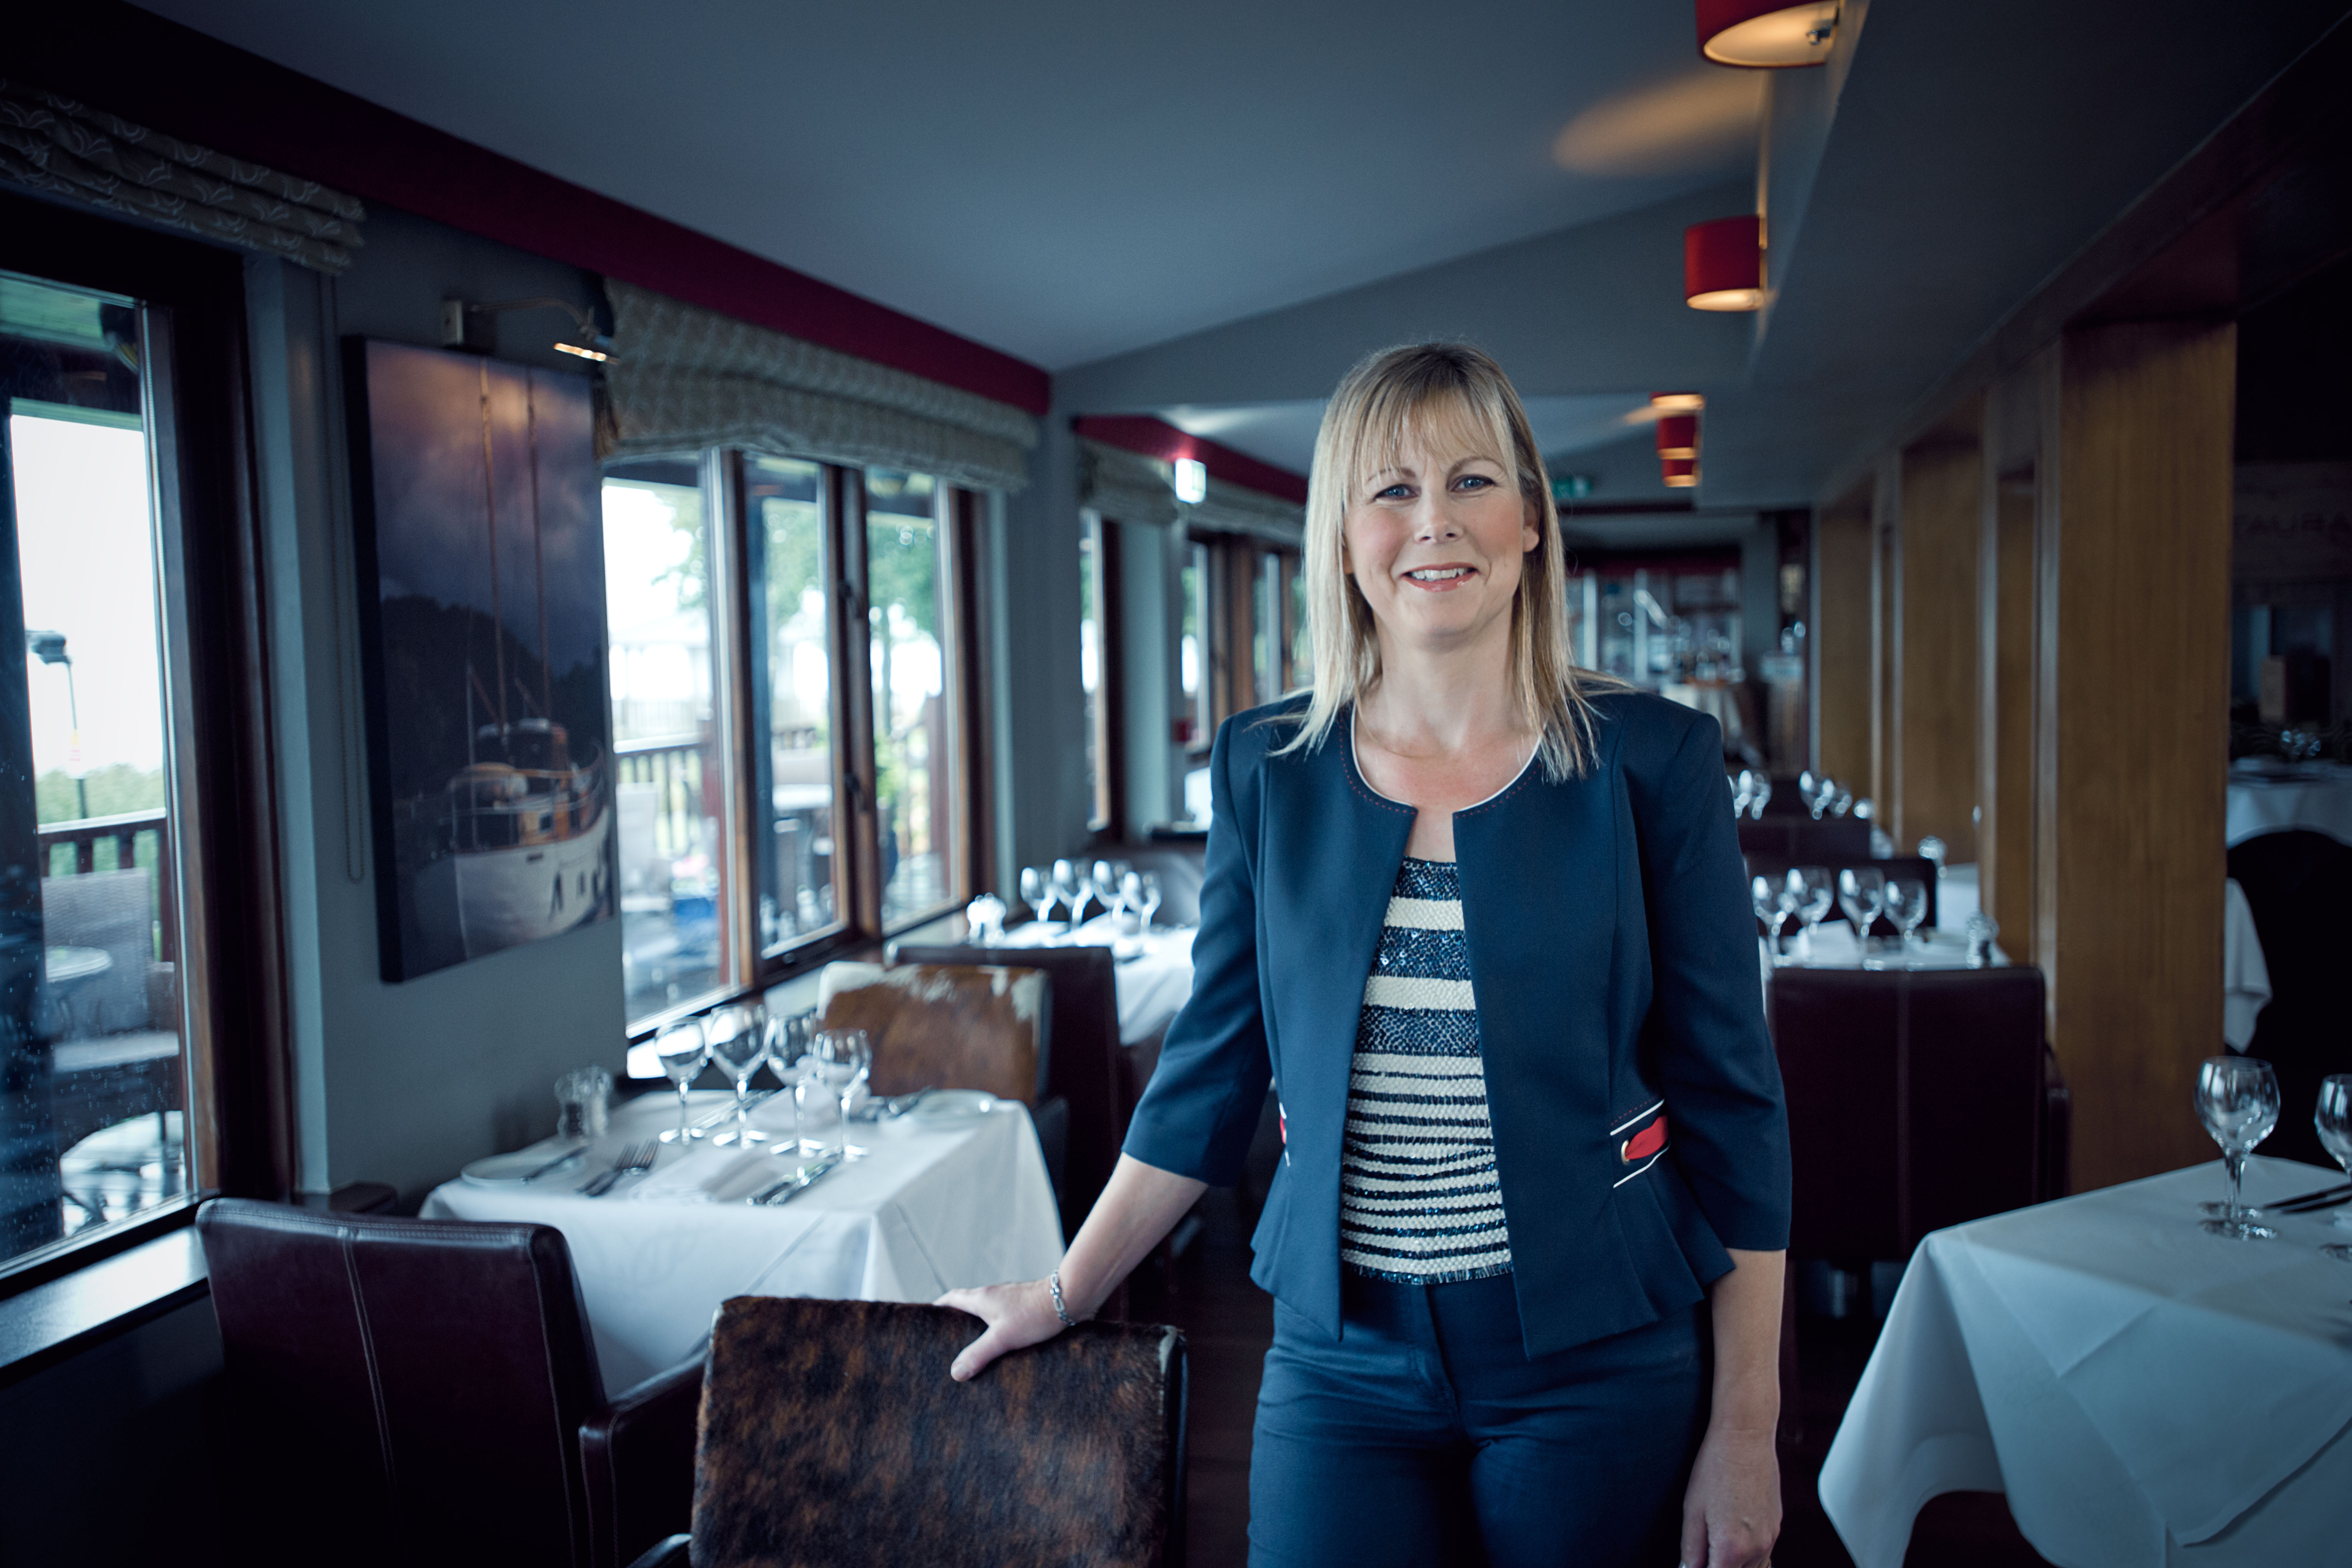 Jane English of Wineport Lodge in her restaurant